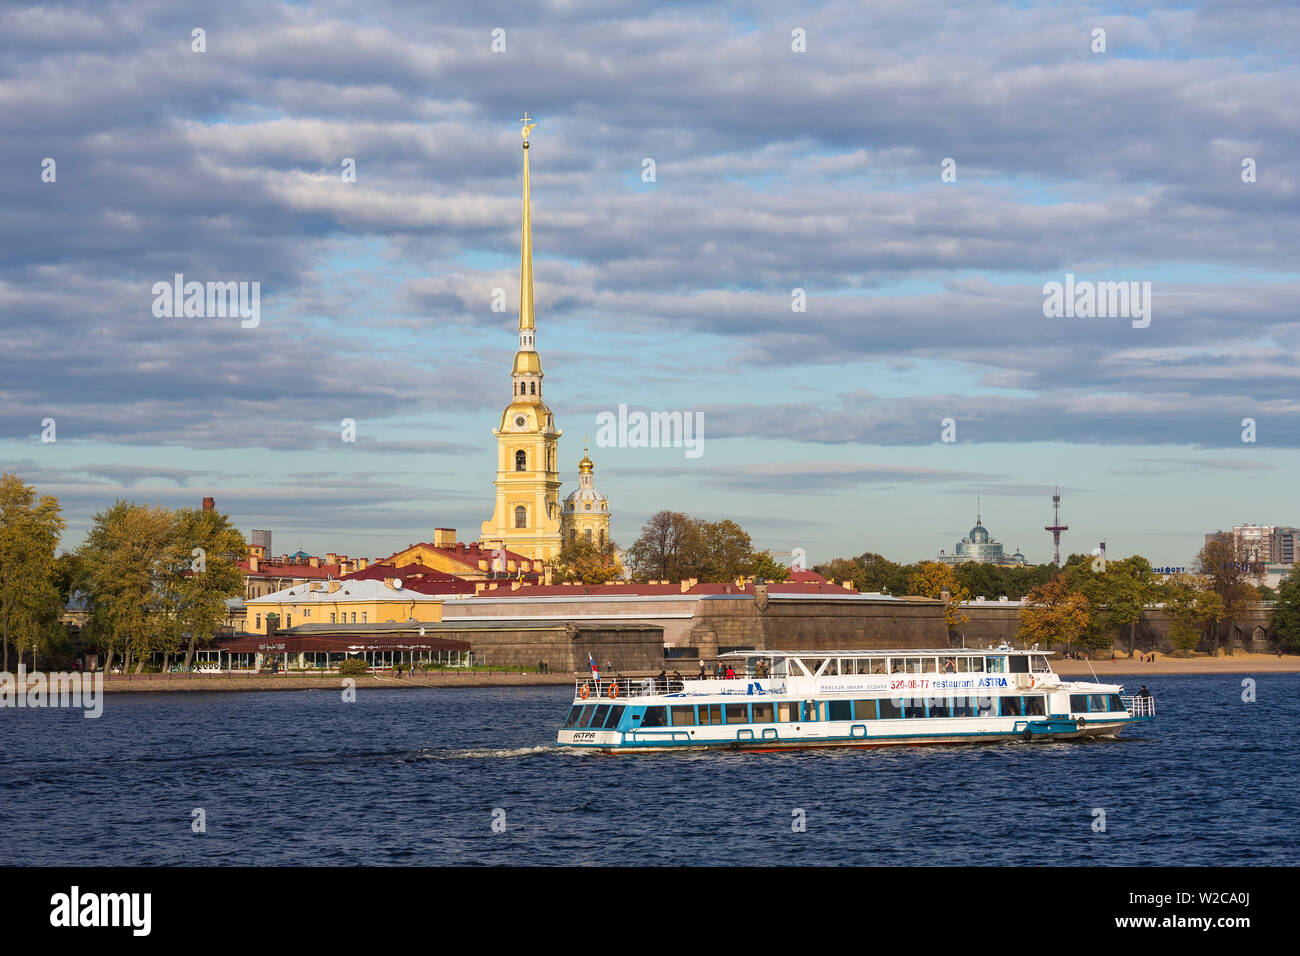 Russia, Saint Petersburg, Peter and Paul Fortress on Neva riverside, classified as World Heritage by UNESCO - Stock Image